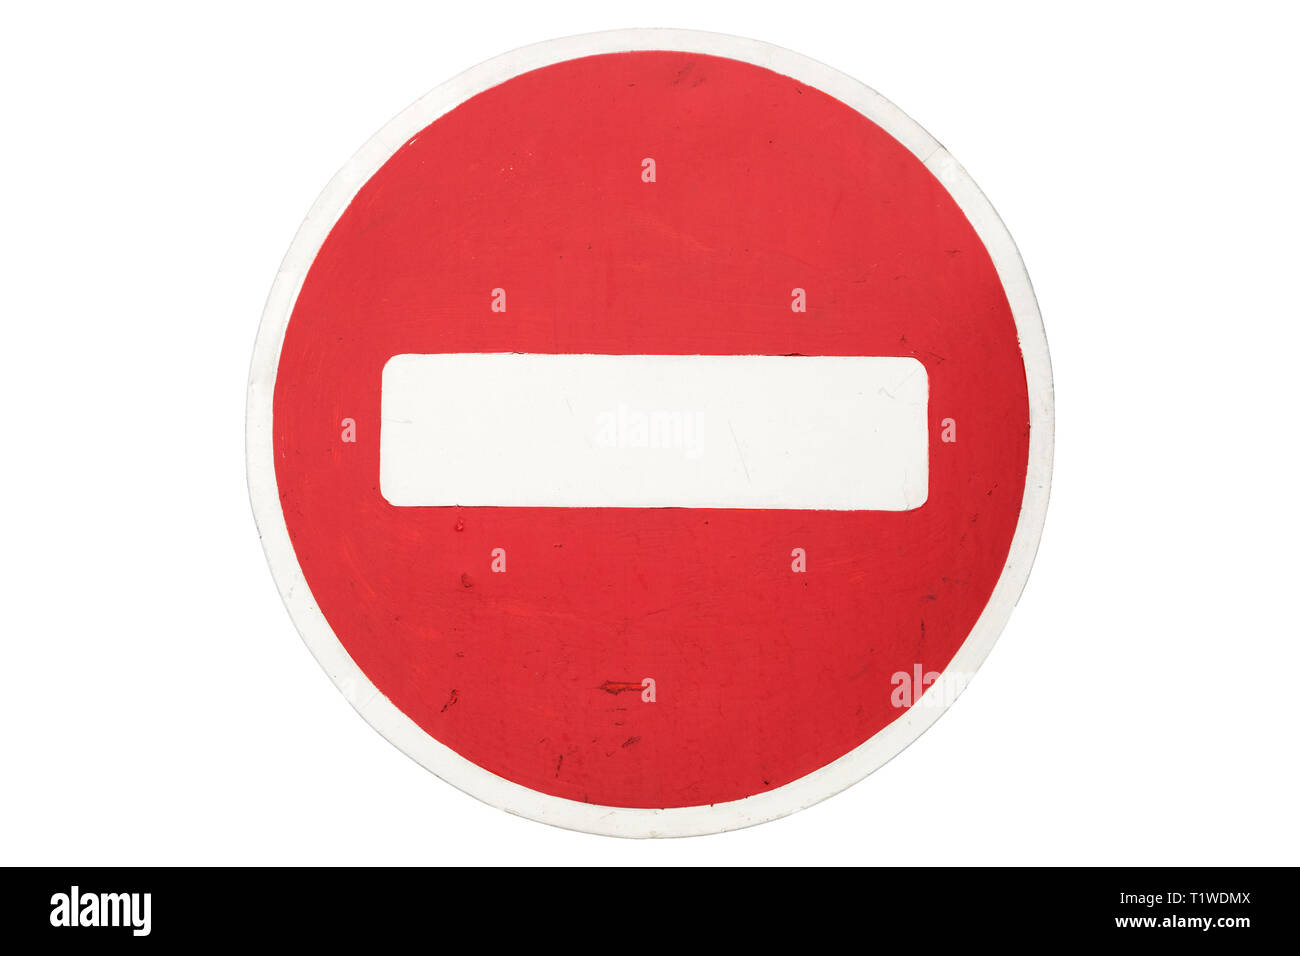 Road sign 'No entry' isolated on white. - Stock Image